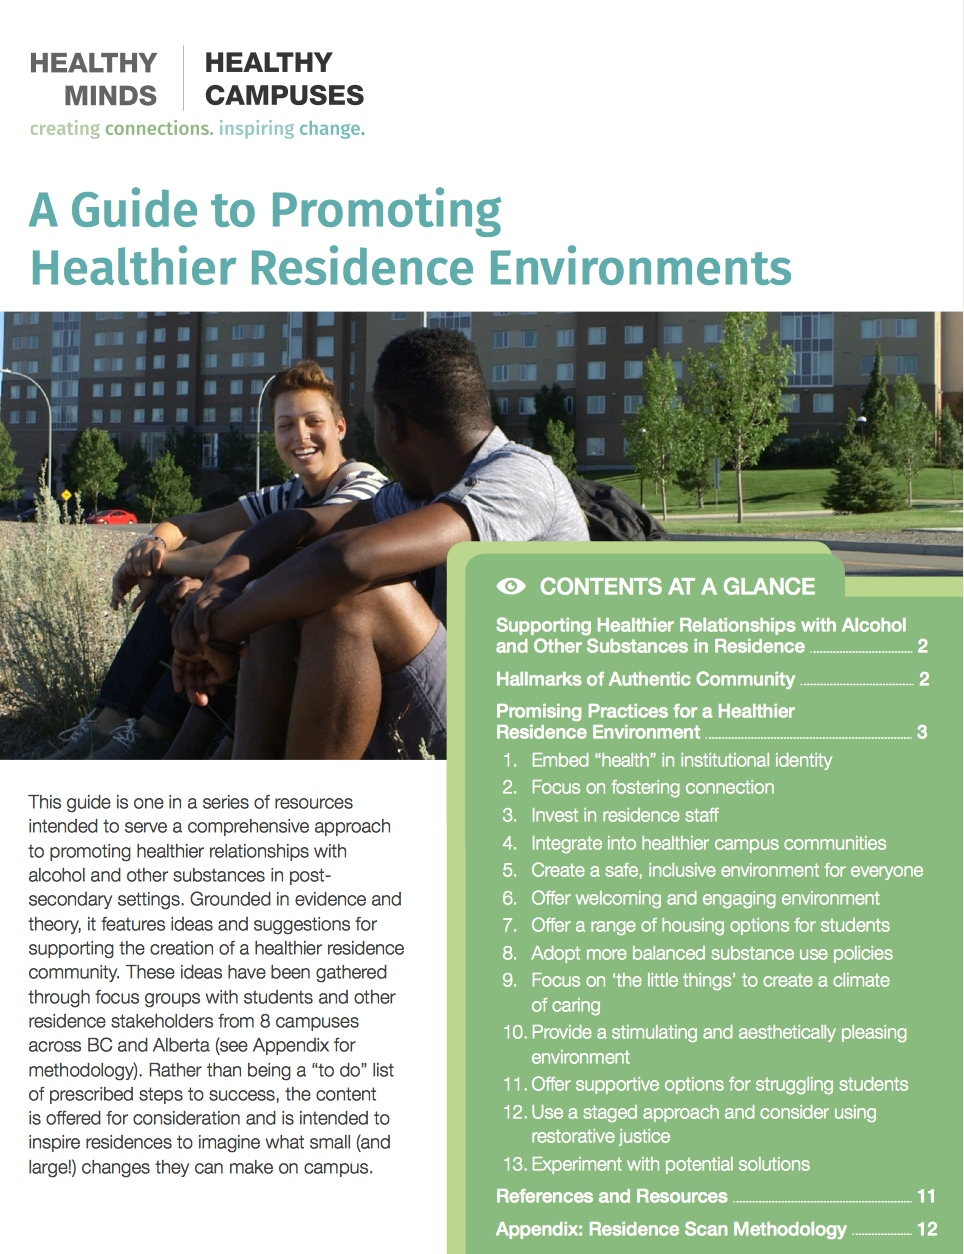 A Guide to Promoting Healthier Residence Envrionments